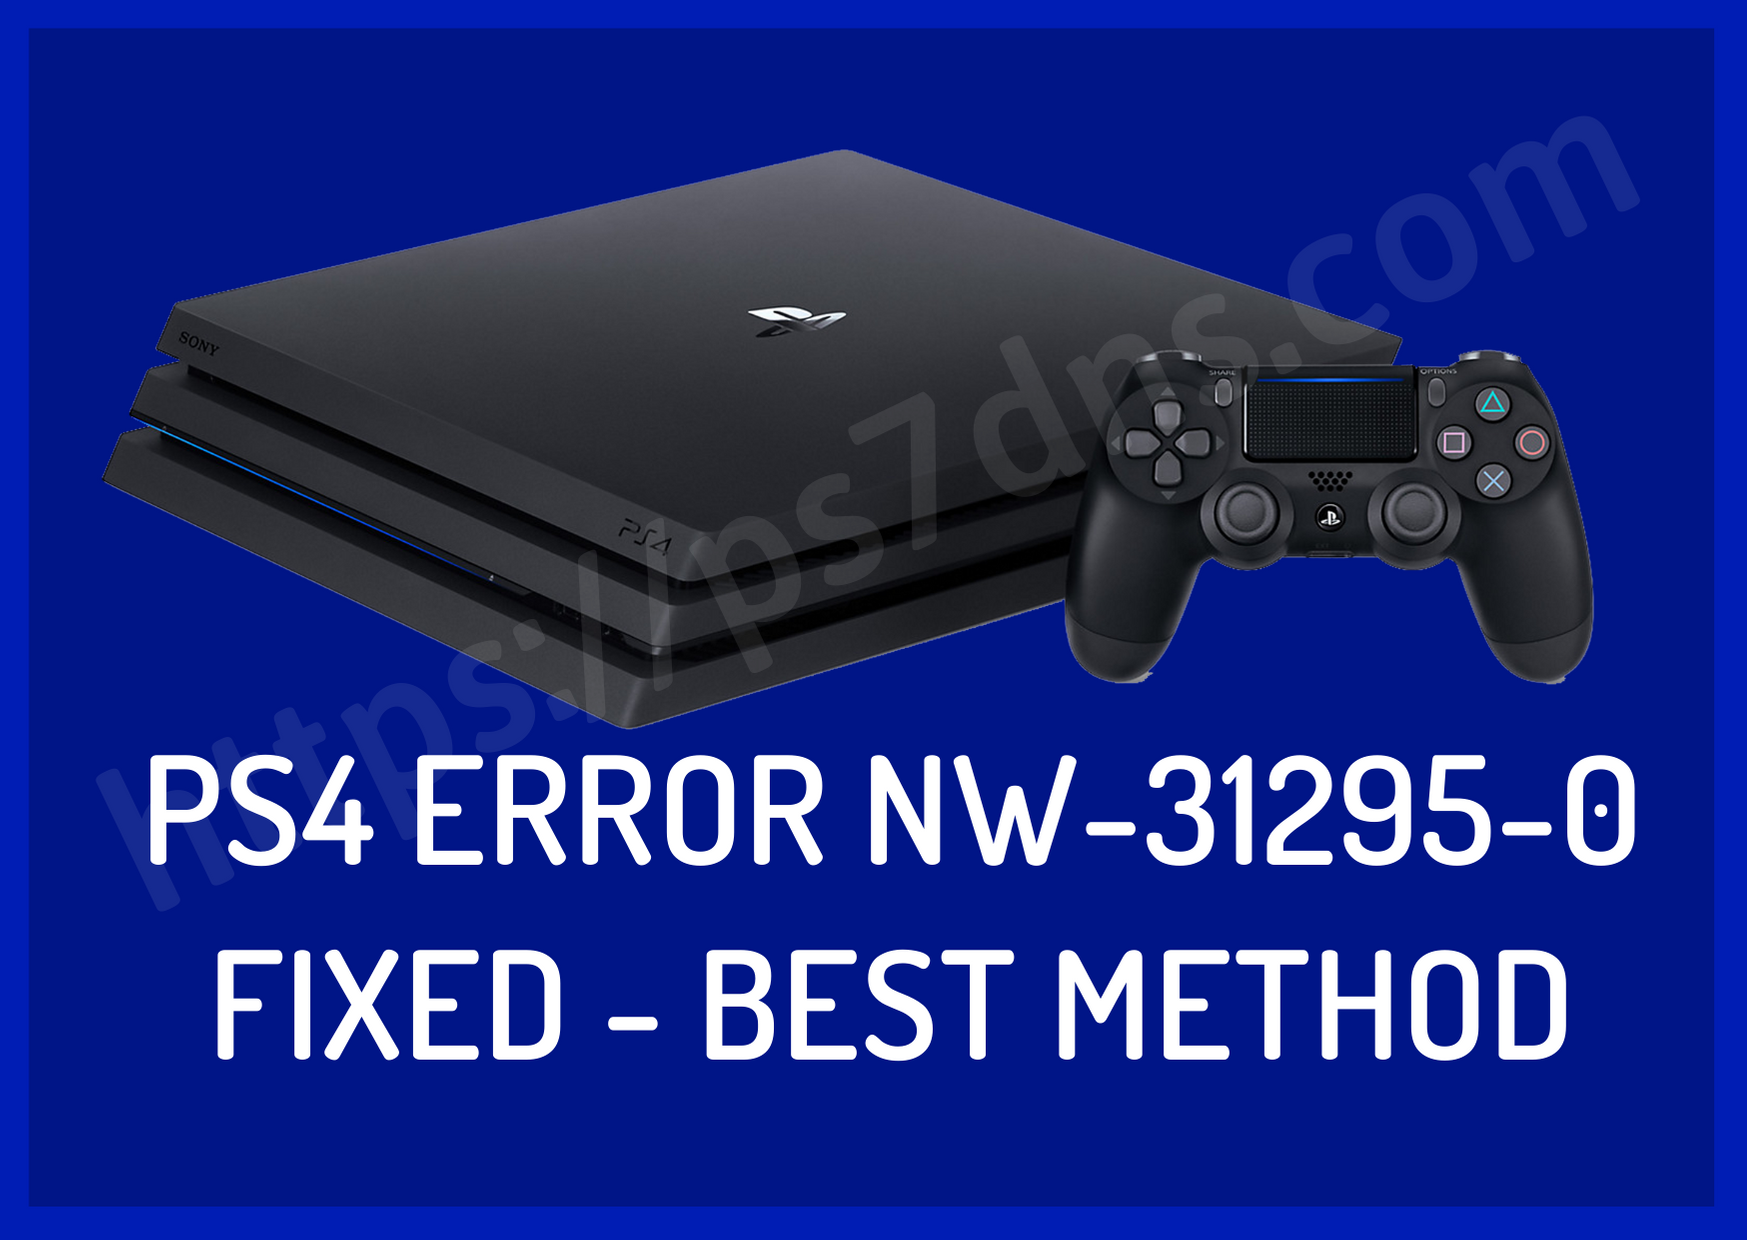 PS4 Error NW-31295-0 Fixed - Best Method